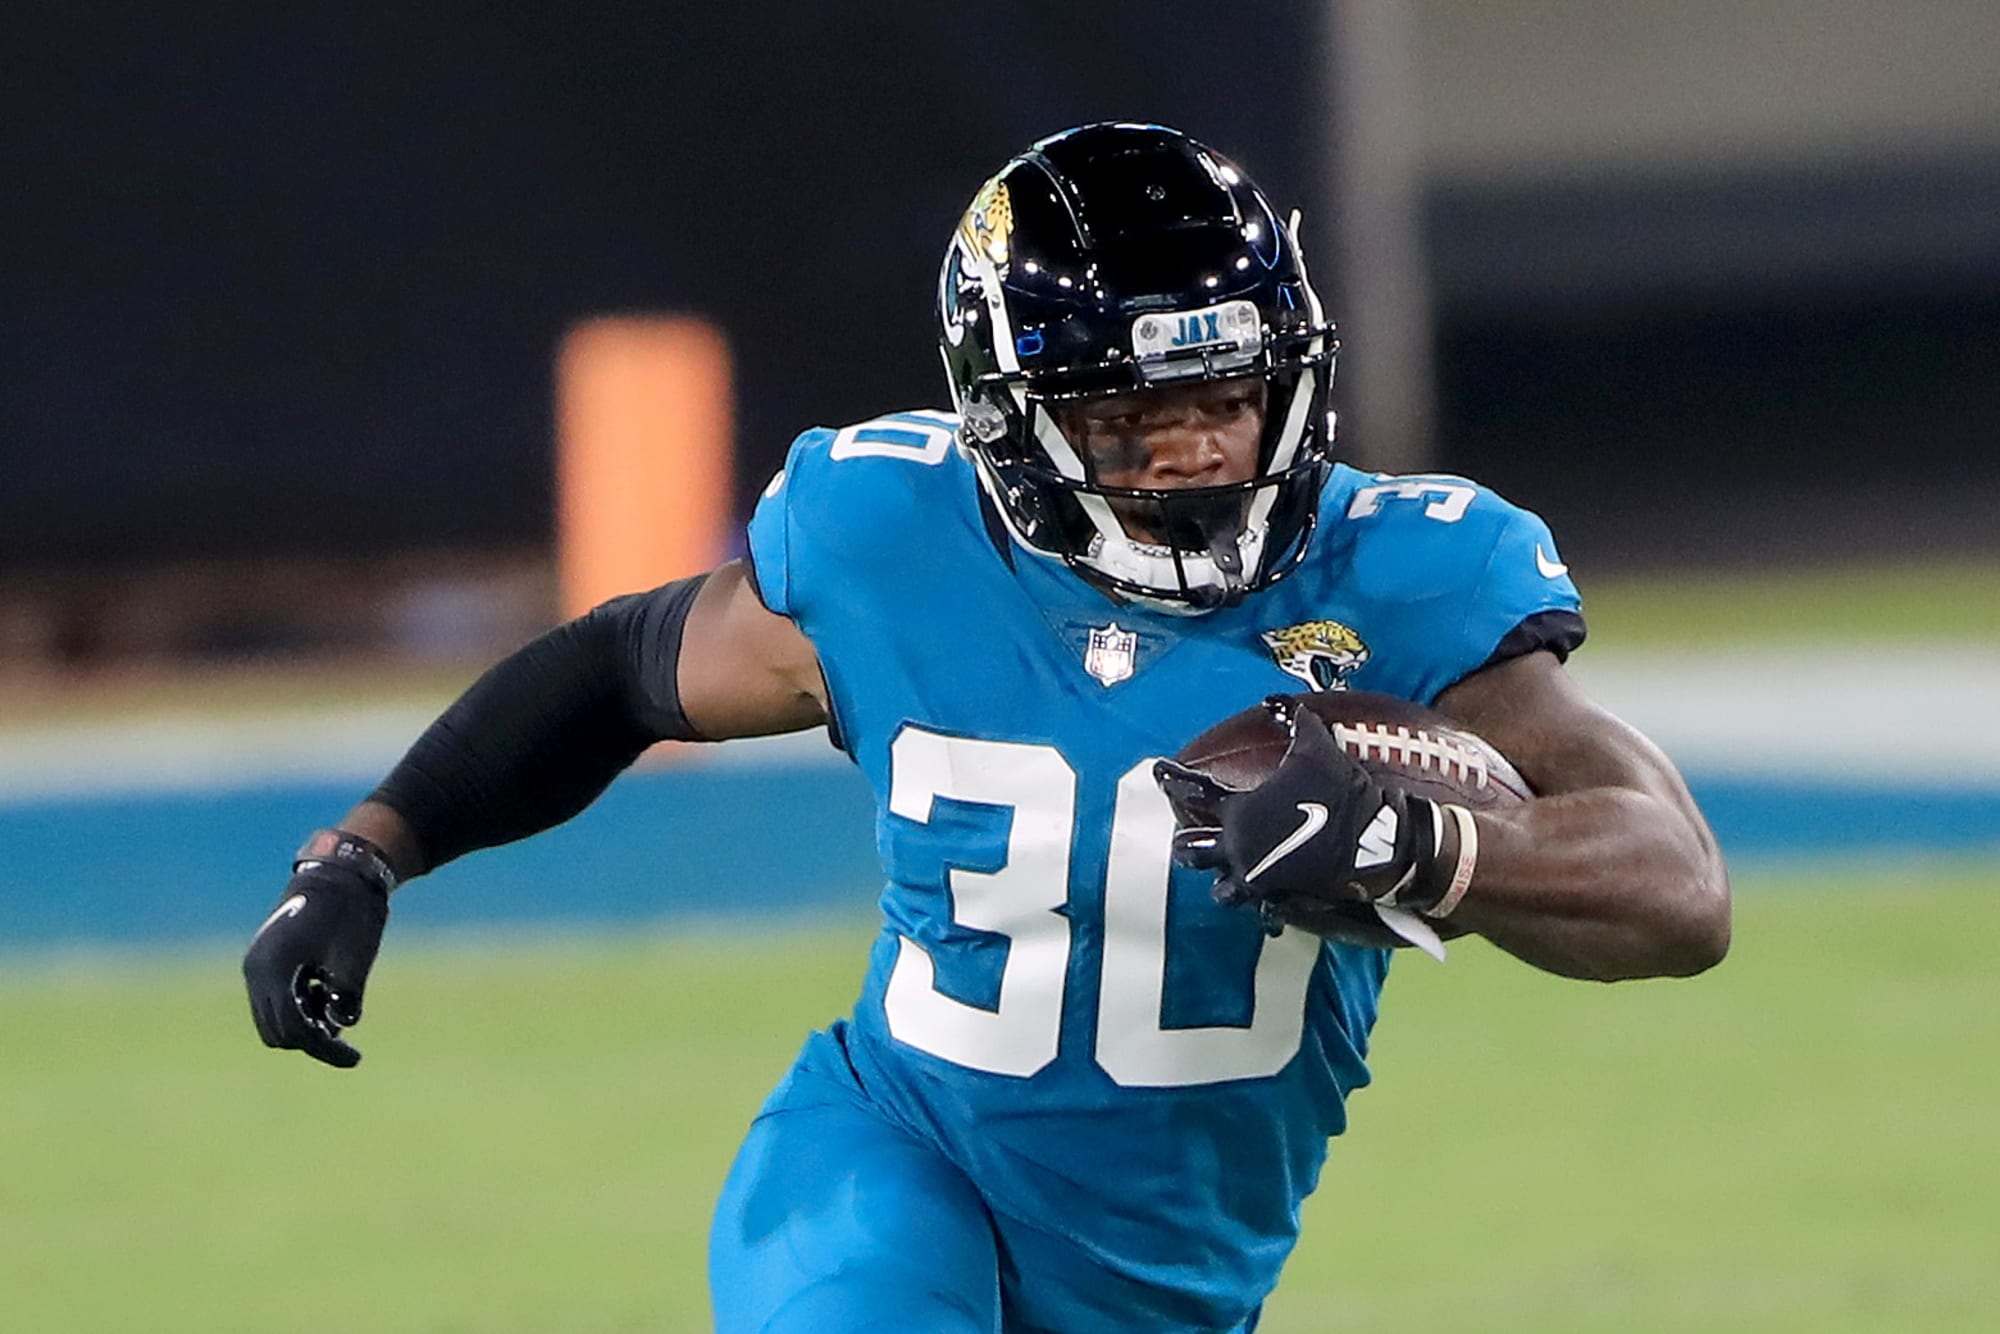 James Robinson the latest example of NFL running backs not mattering